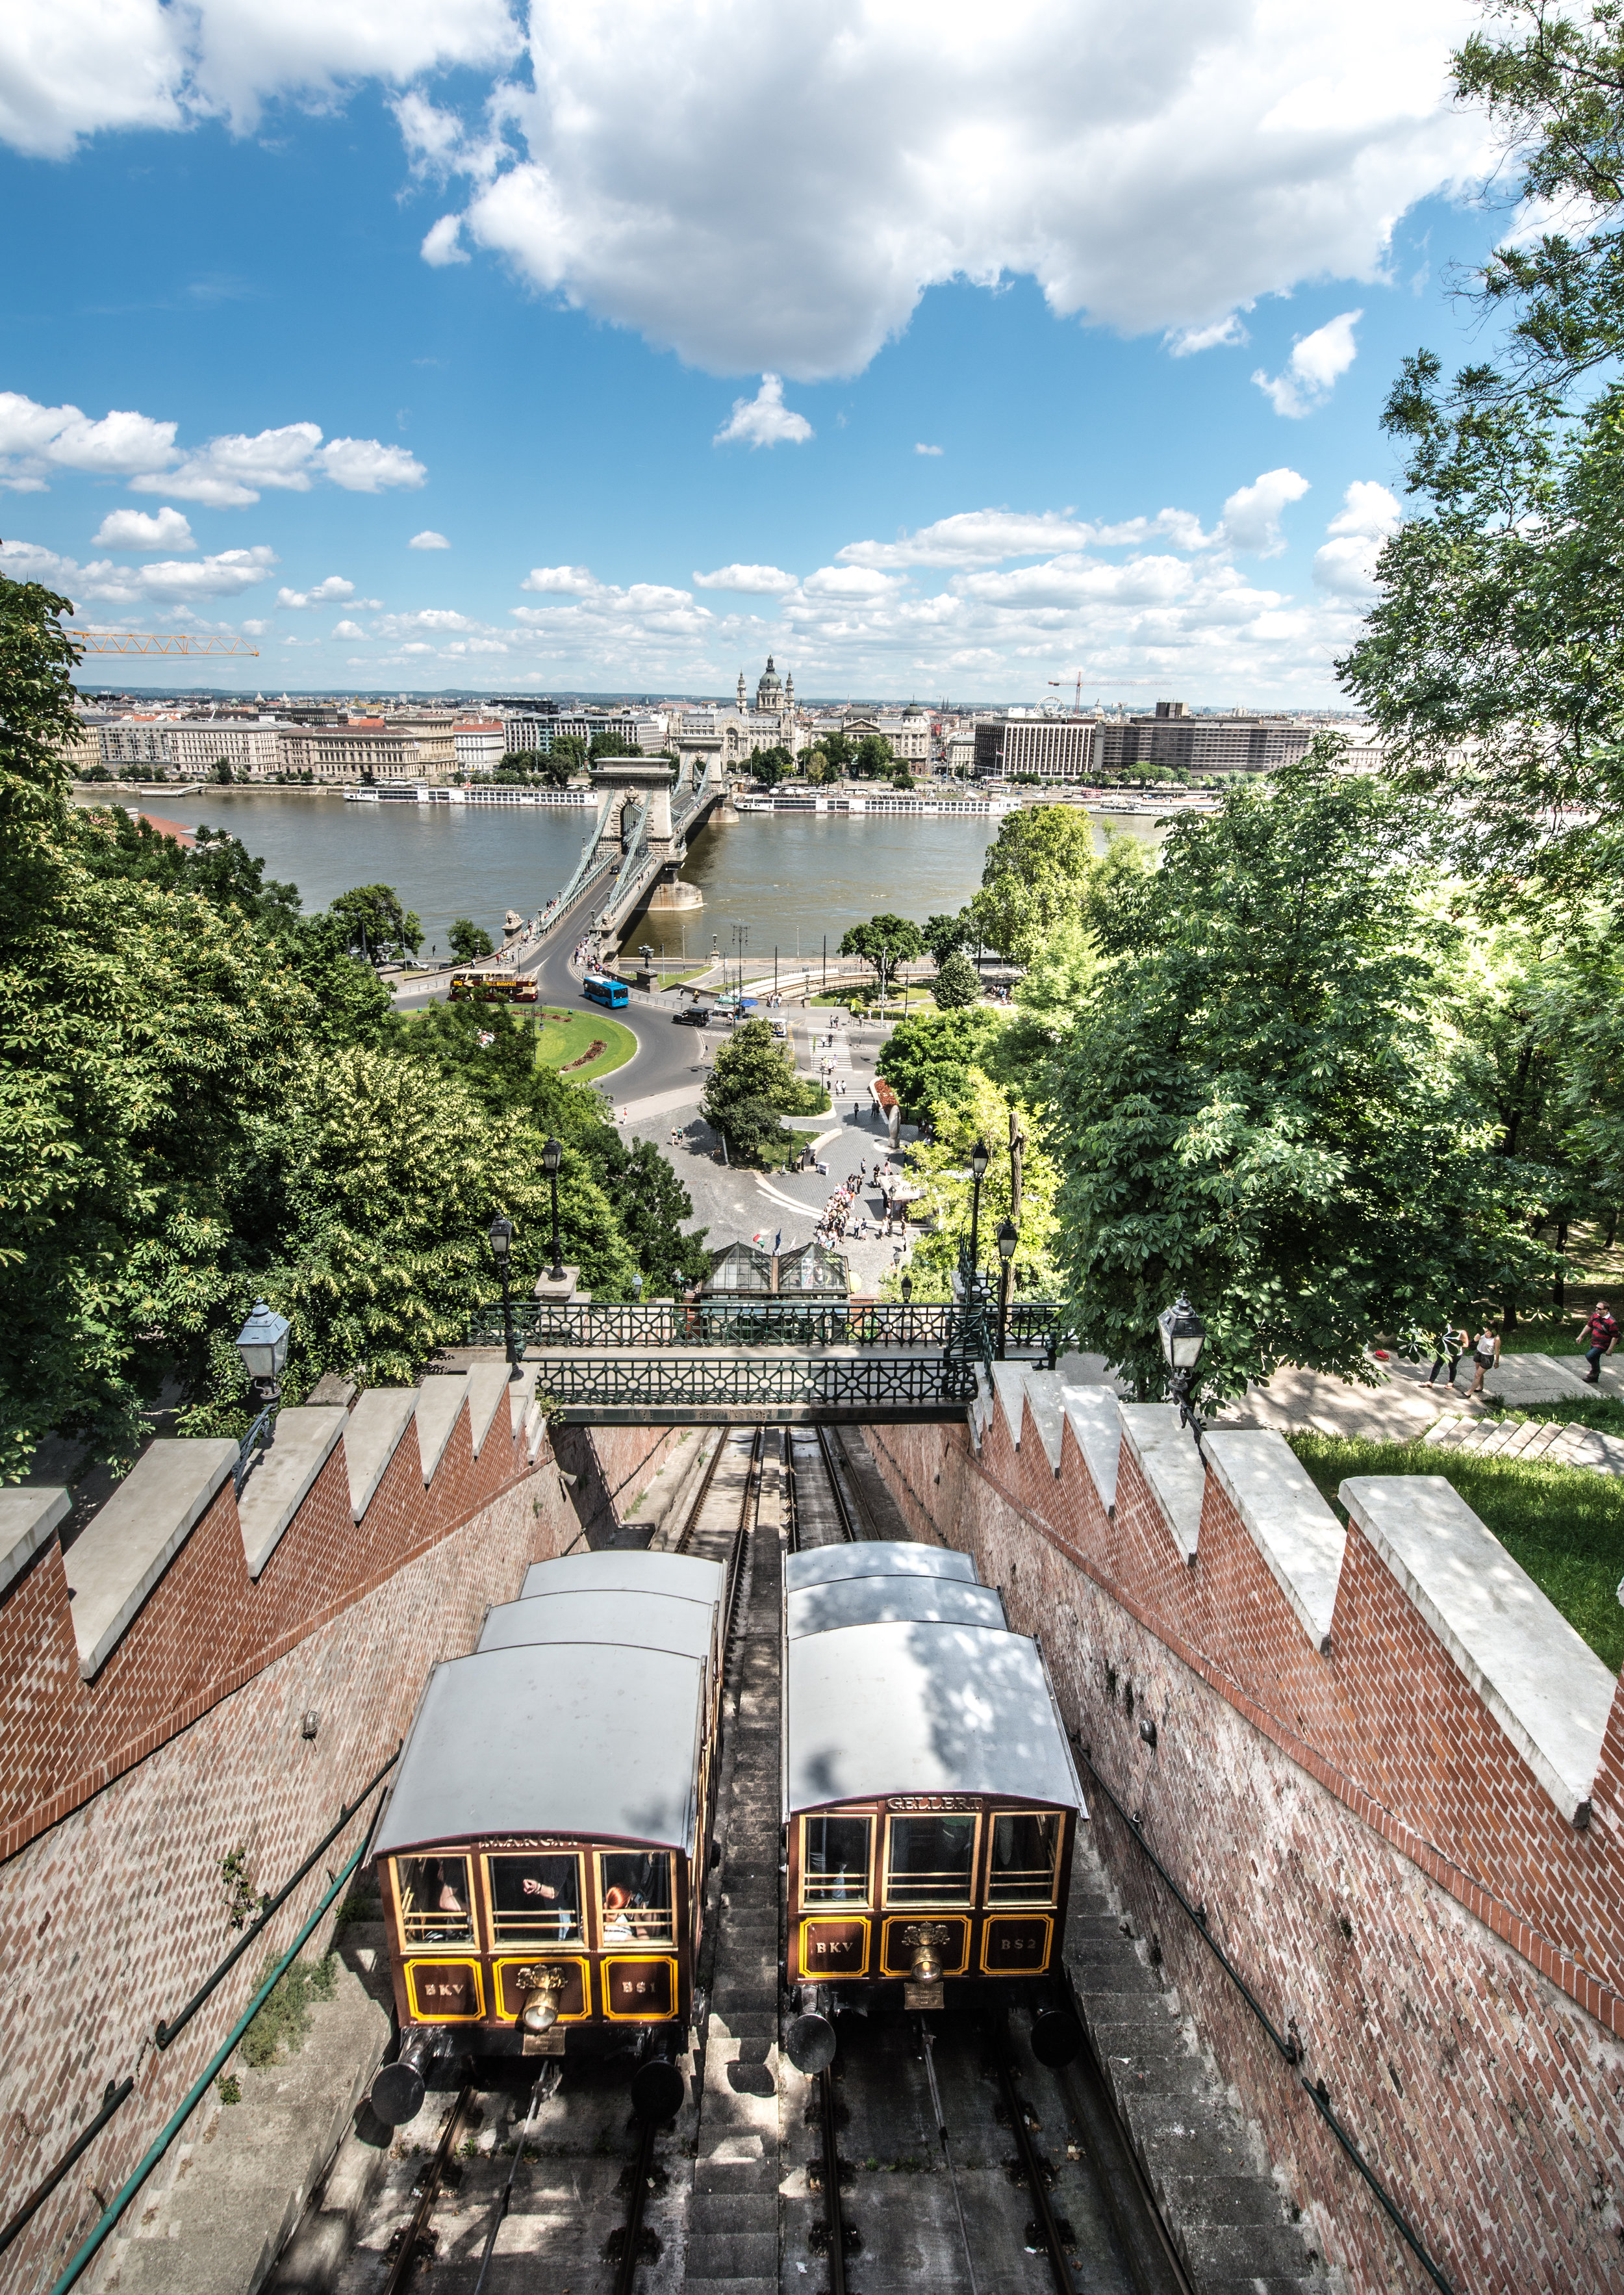 - Included in the price:- public transportation ticket/ car / minivan- ticket for the funicular- lunch in the city's best market (two courses, 1 glass of wine/soft drink, coffee)Not included:- entrance tickets- extra beverages